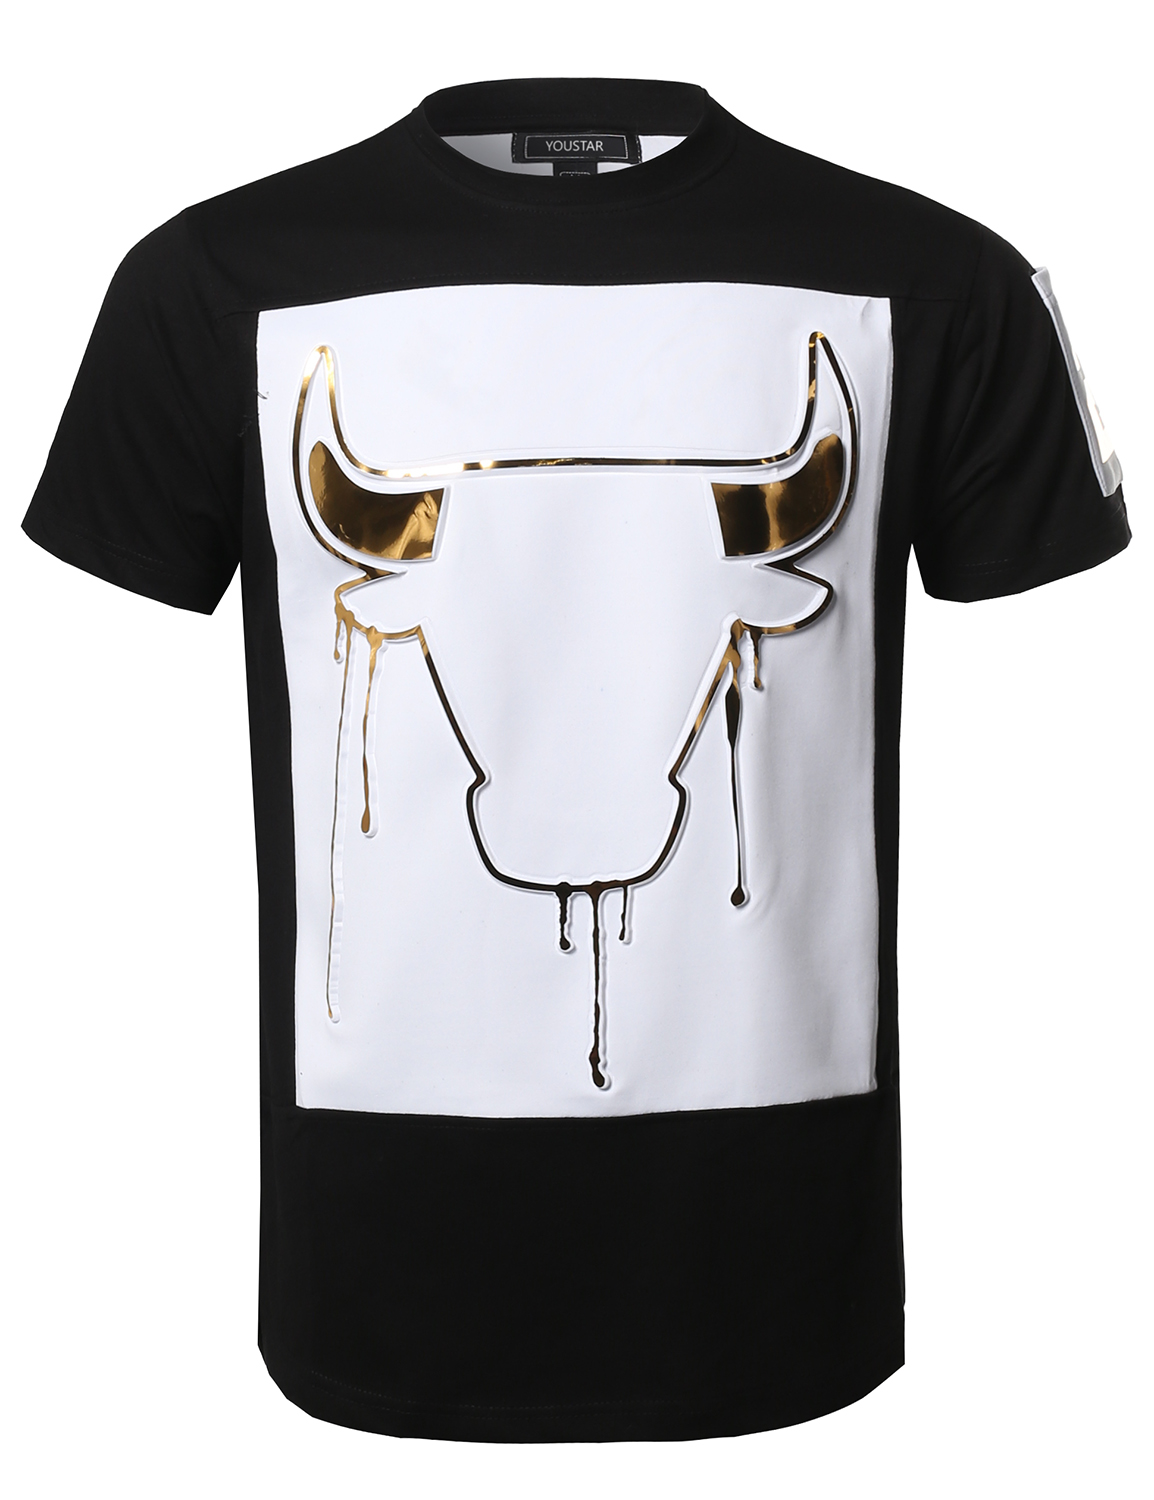 T Shirts With Foil Print Bcd Tofu House